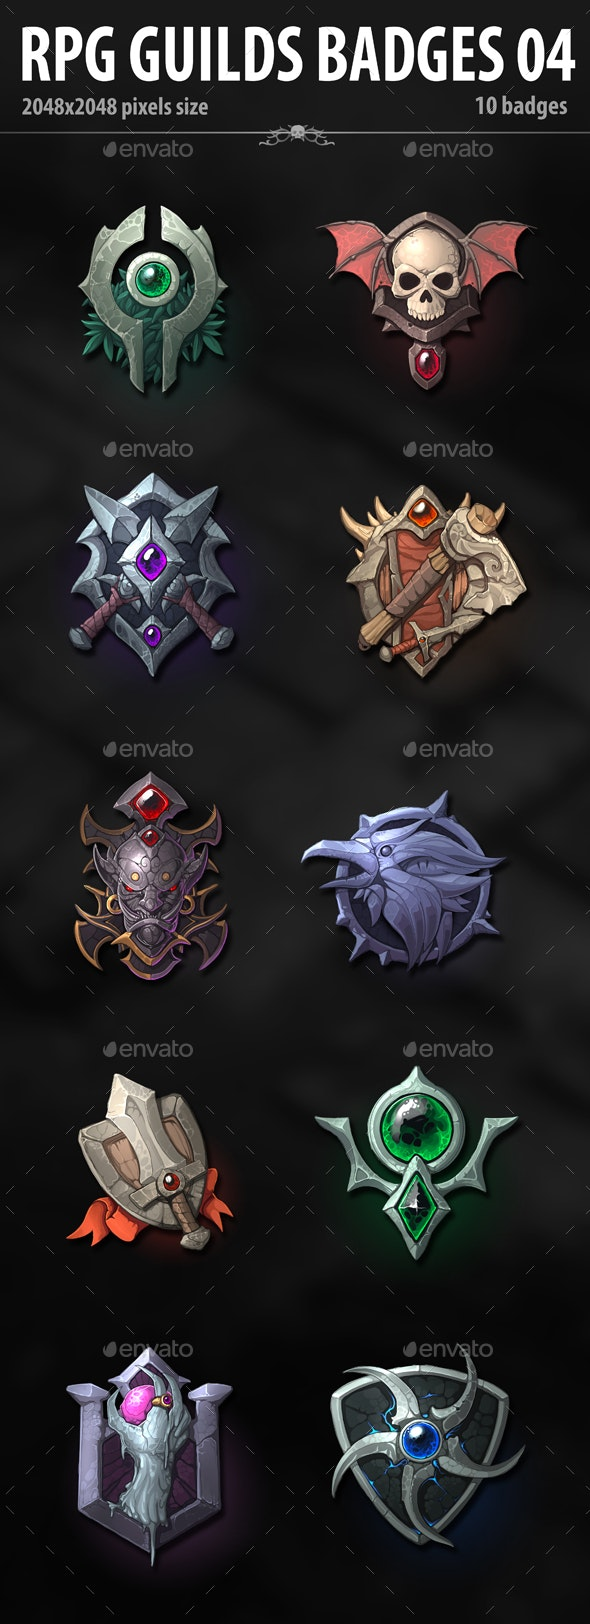 RPG Guilds Badges 04 - Miscellaneous Game Assets